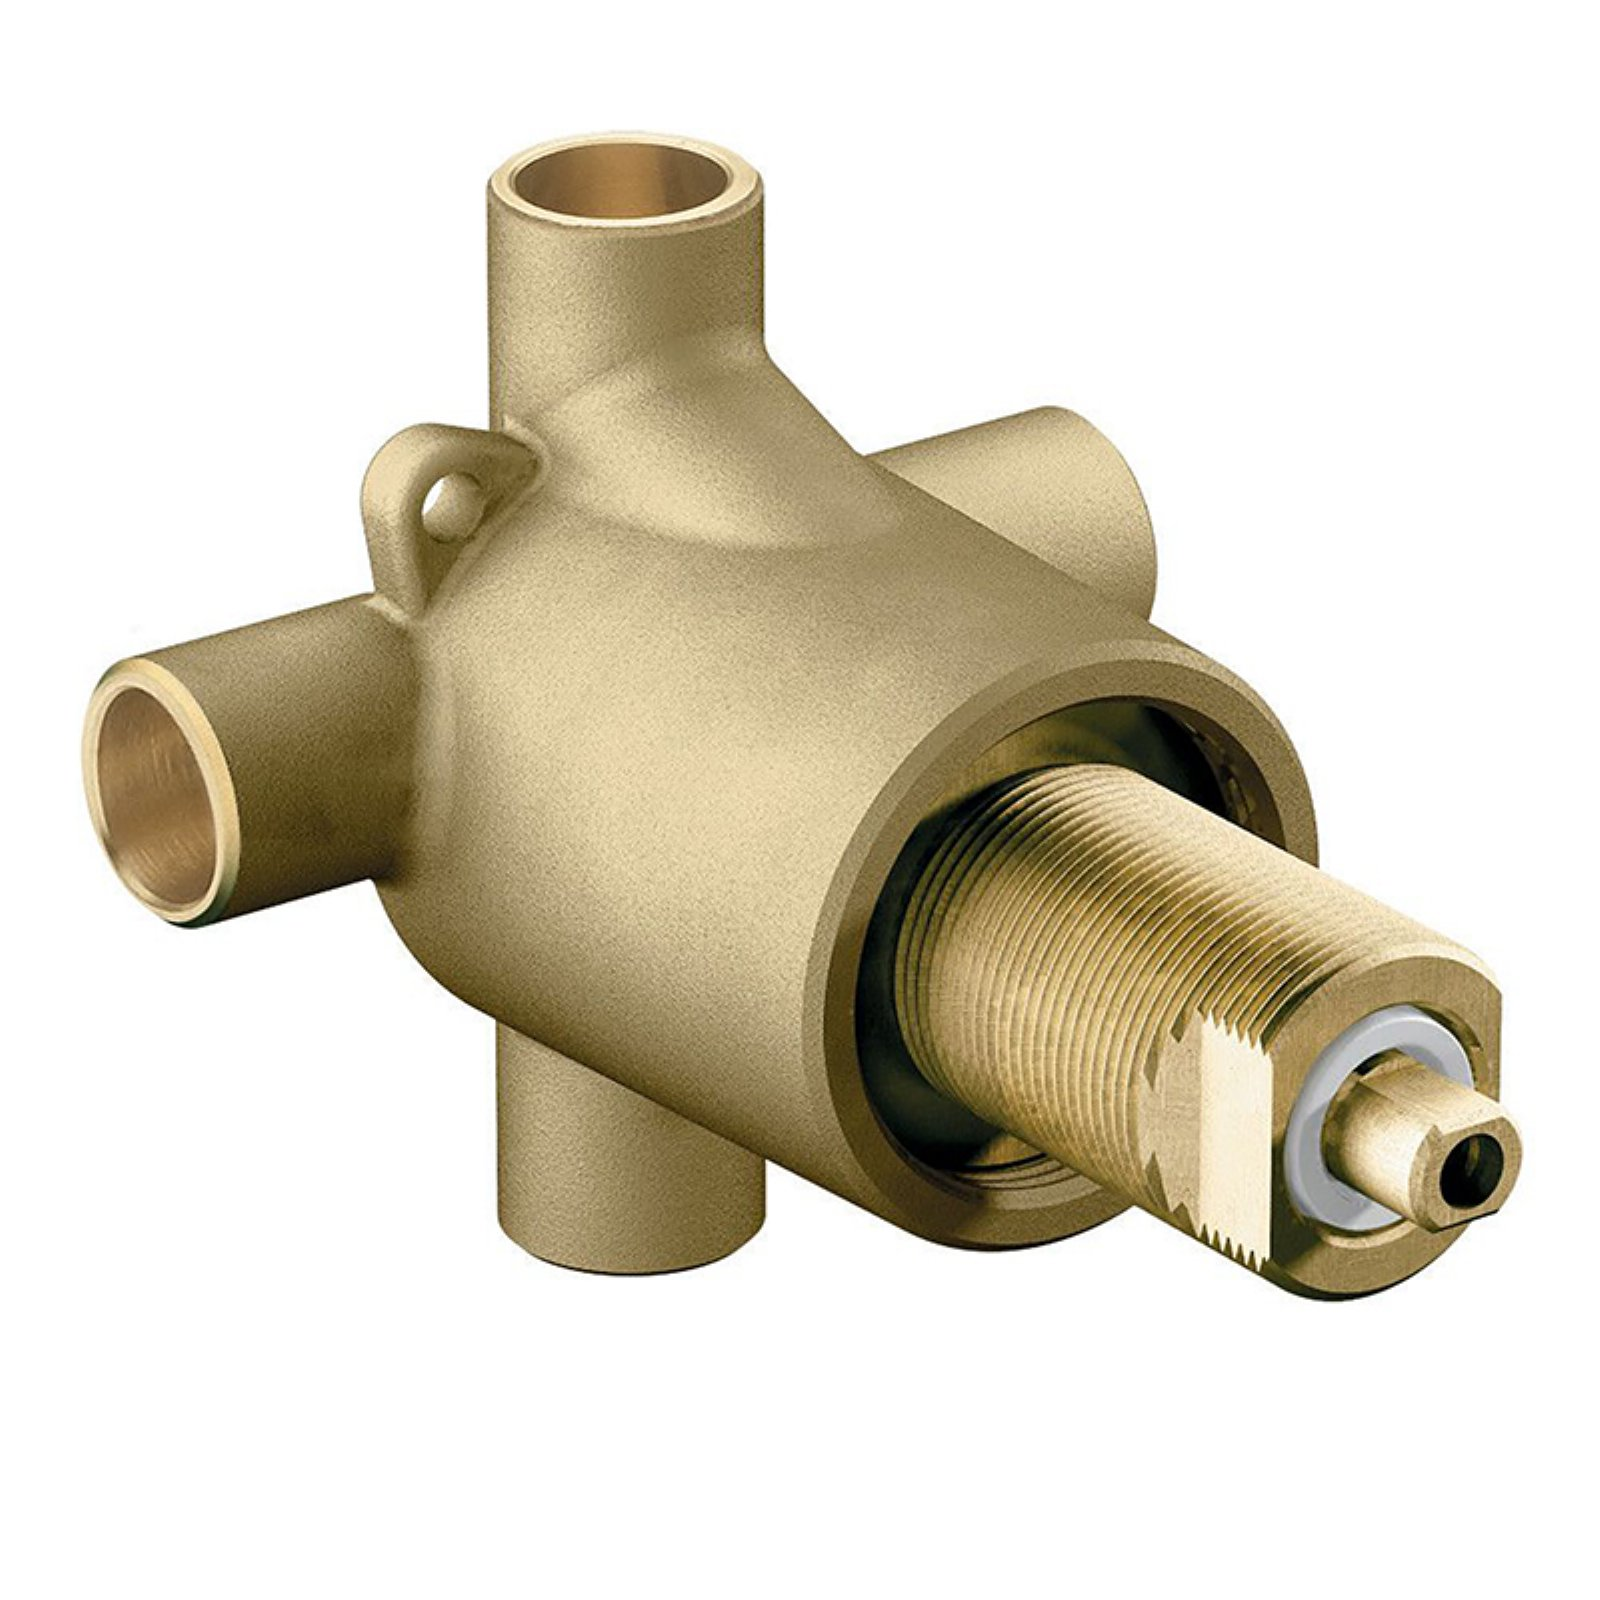 Moen 3360 1/2 Inch Sweat (Copper-to-Copper) 3-Function Diverter Valve